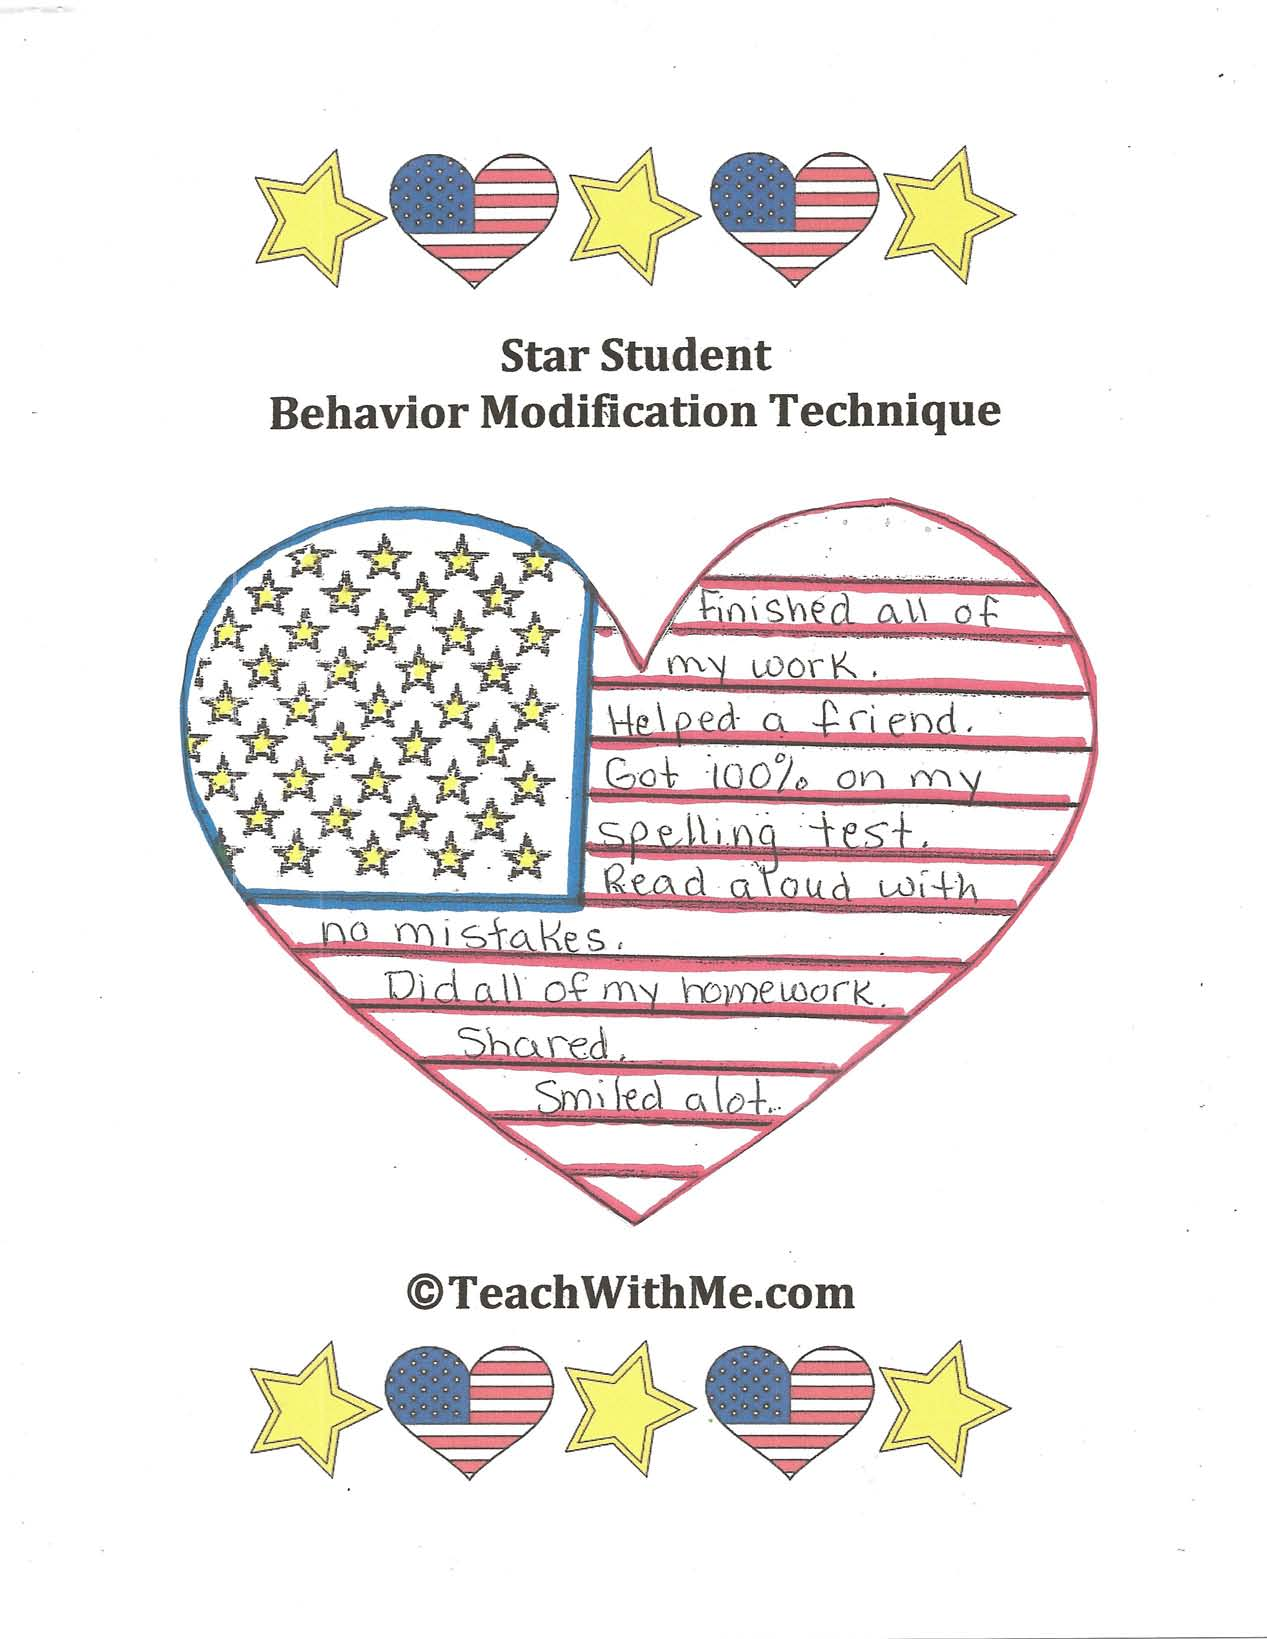 star student activity, behavior modification ideas, behavior modification techniques, behavior tips, discipline tips, discipline strategies,